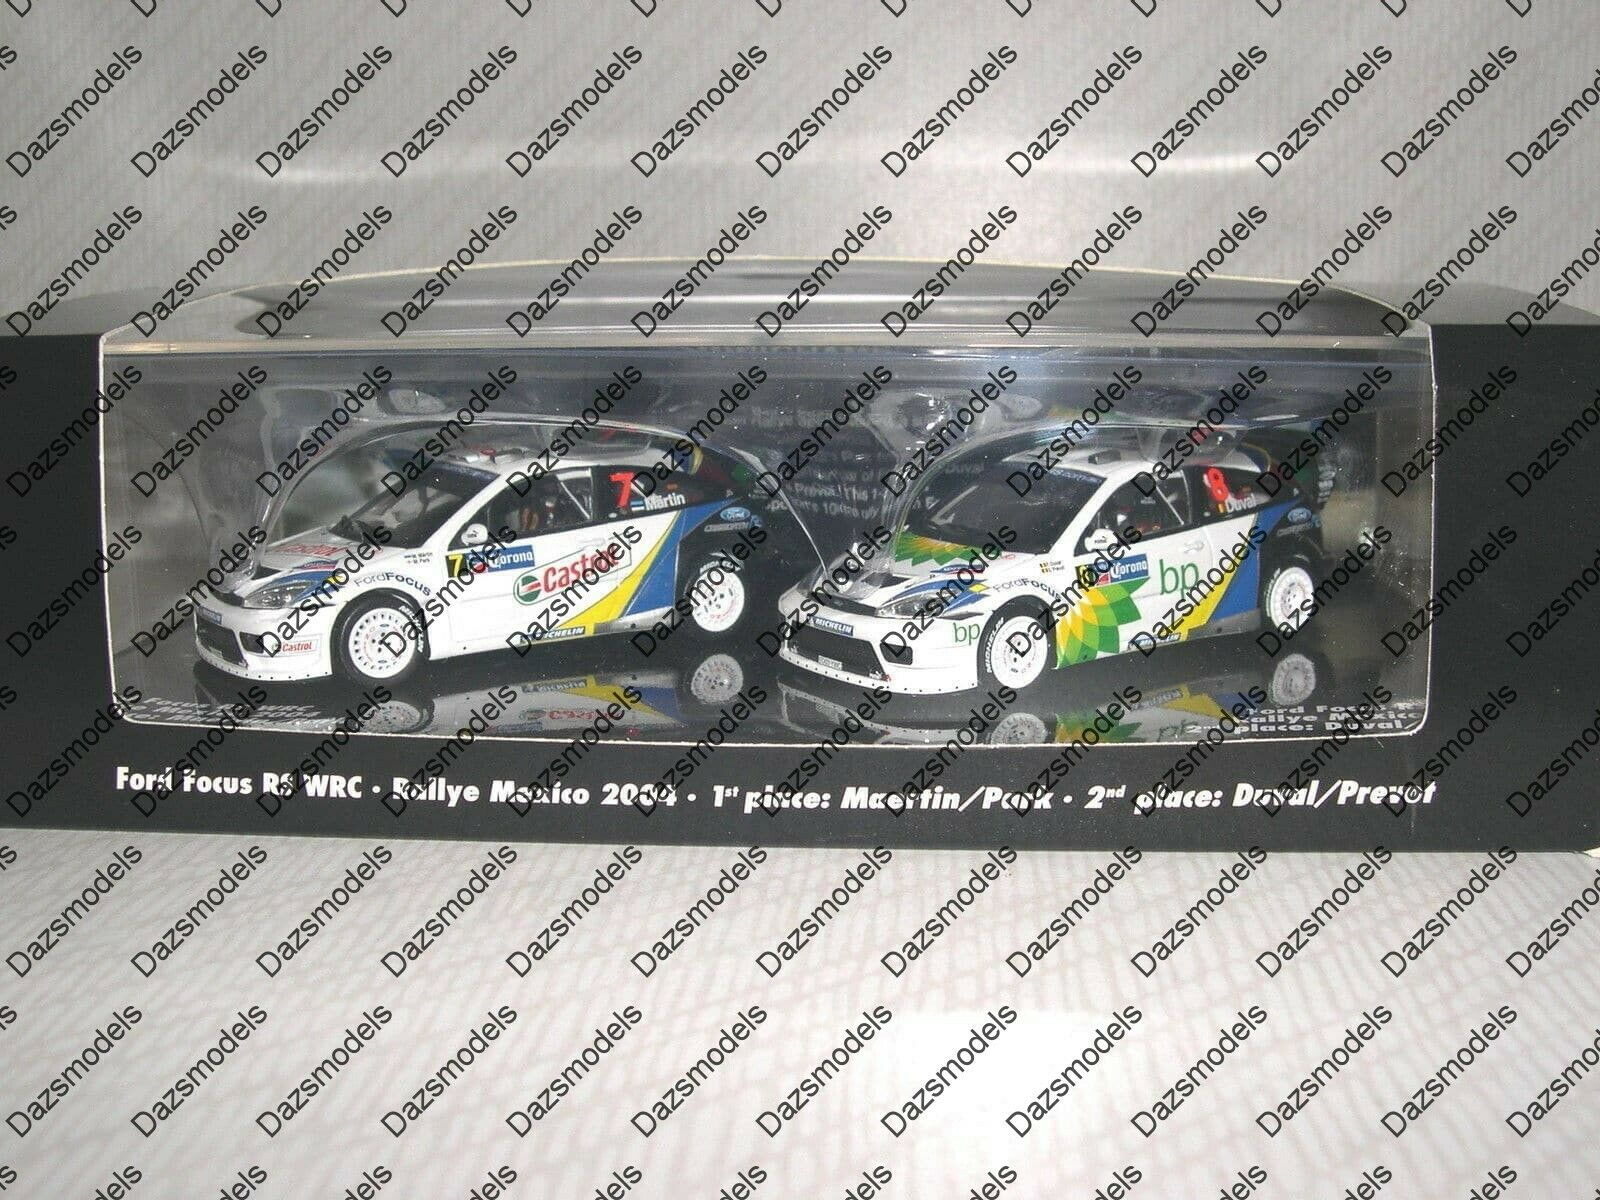 Minichamps Ford Focus WRC Rallye Mexico 2004 1st   2nd placed